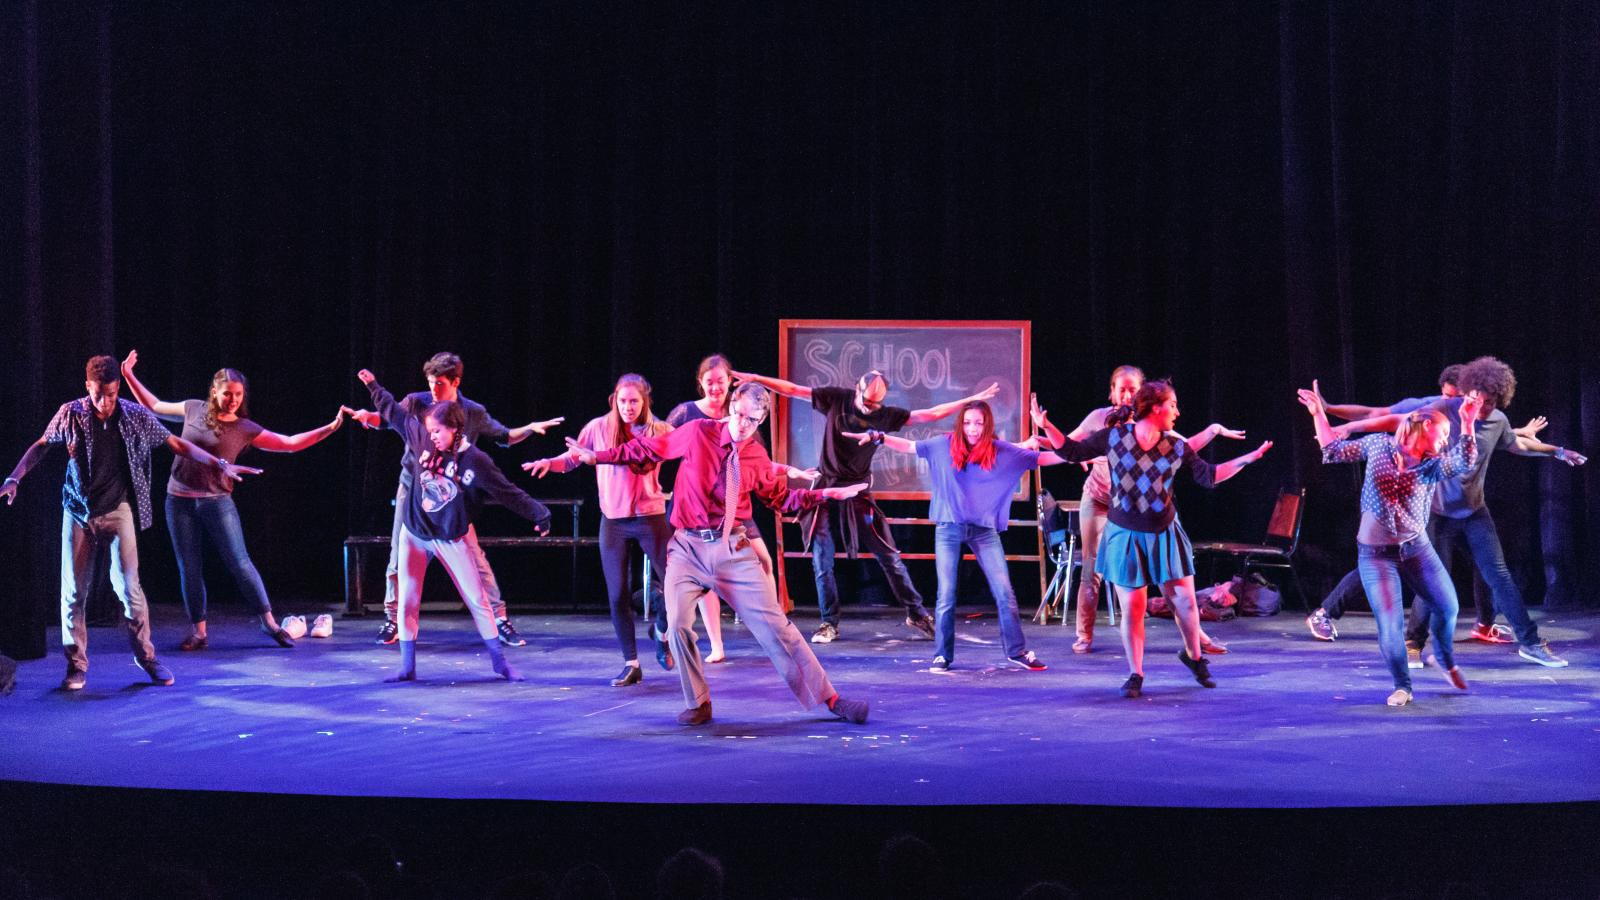 """School of Rhythm"" presented by Elephant Games Productions at Rarig Center Proscenium"